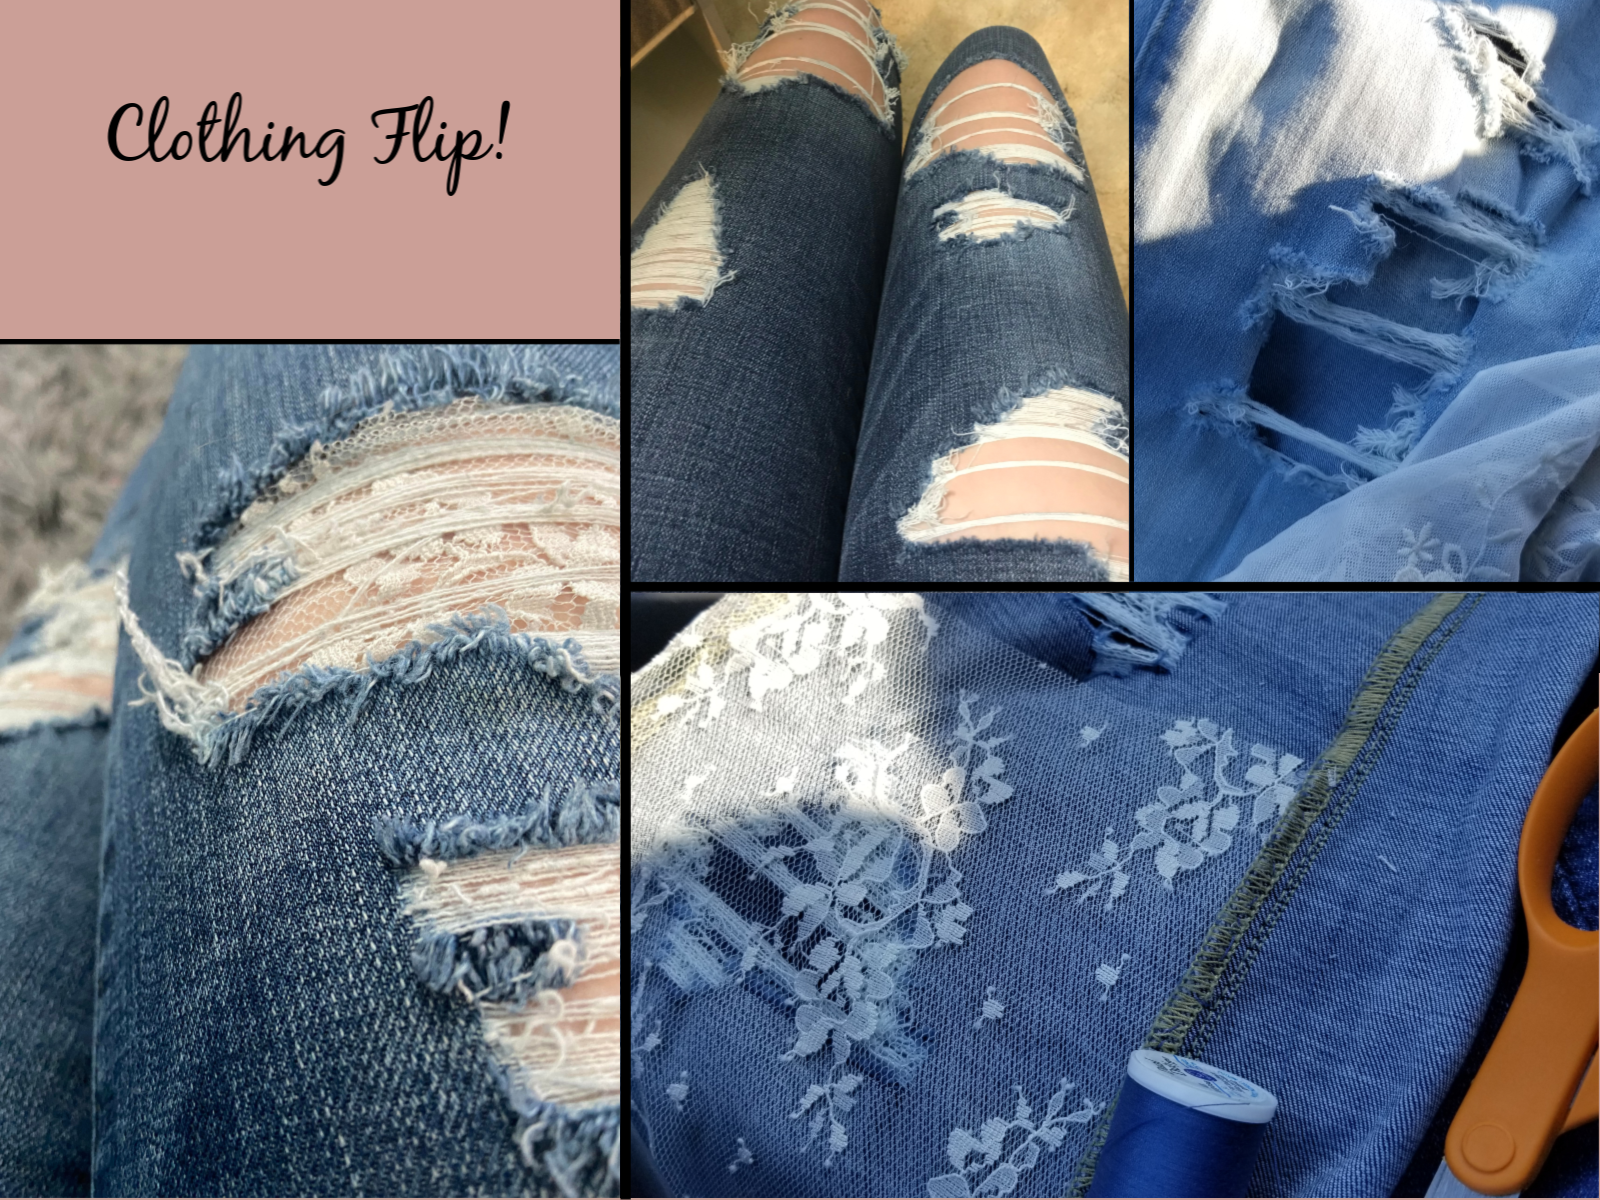 Ripped jeans backed with handstitched lace in holes.